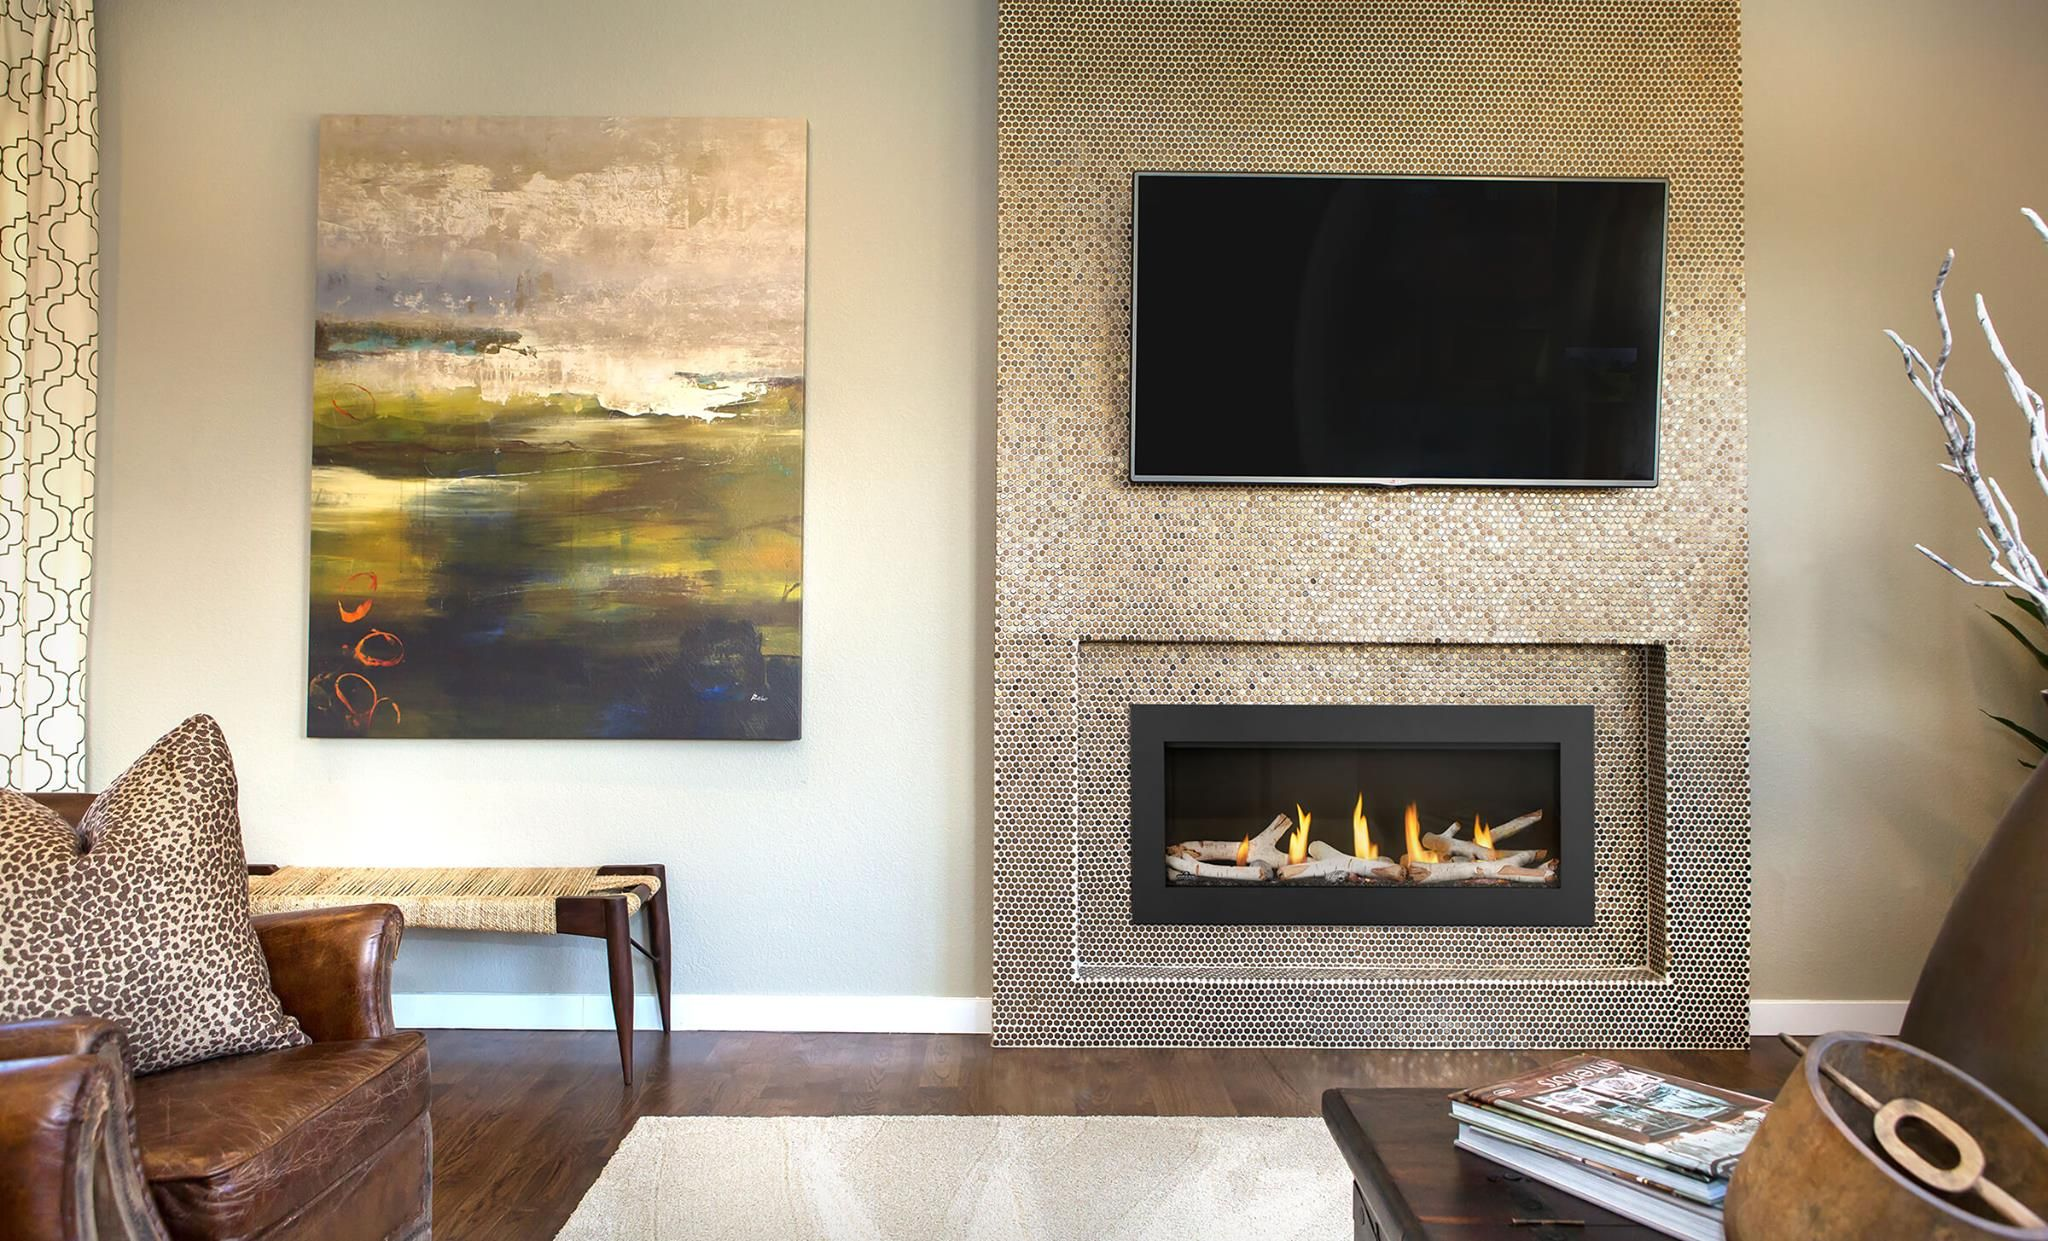 Napoleon Products Acies Gas Fireplace Check Out Our Website For